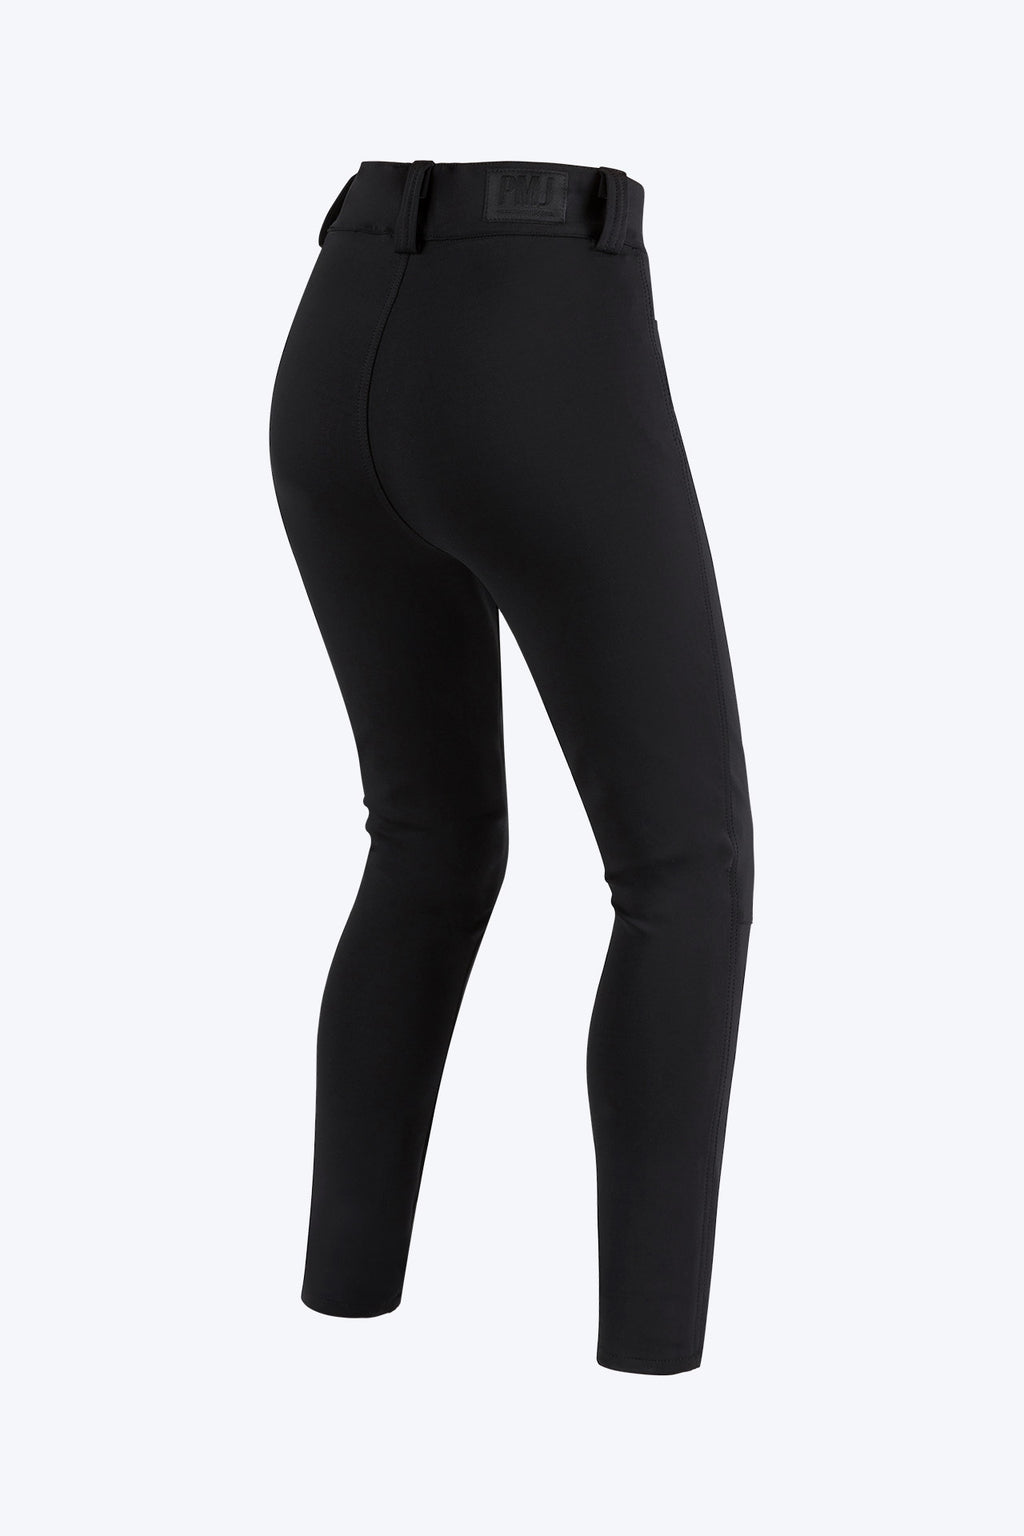 PMJ Ladies Spring Leggings - Black